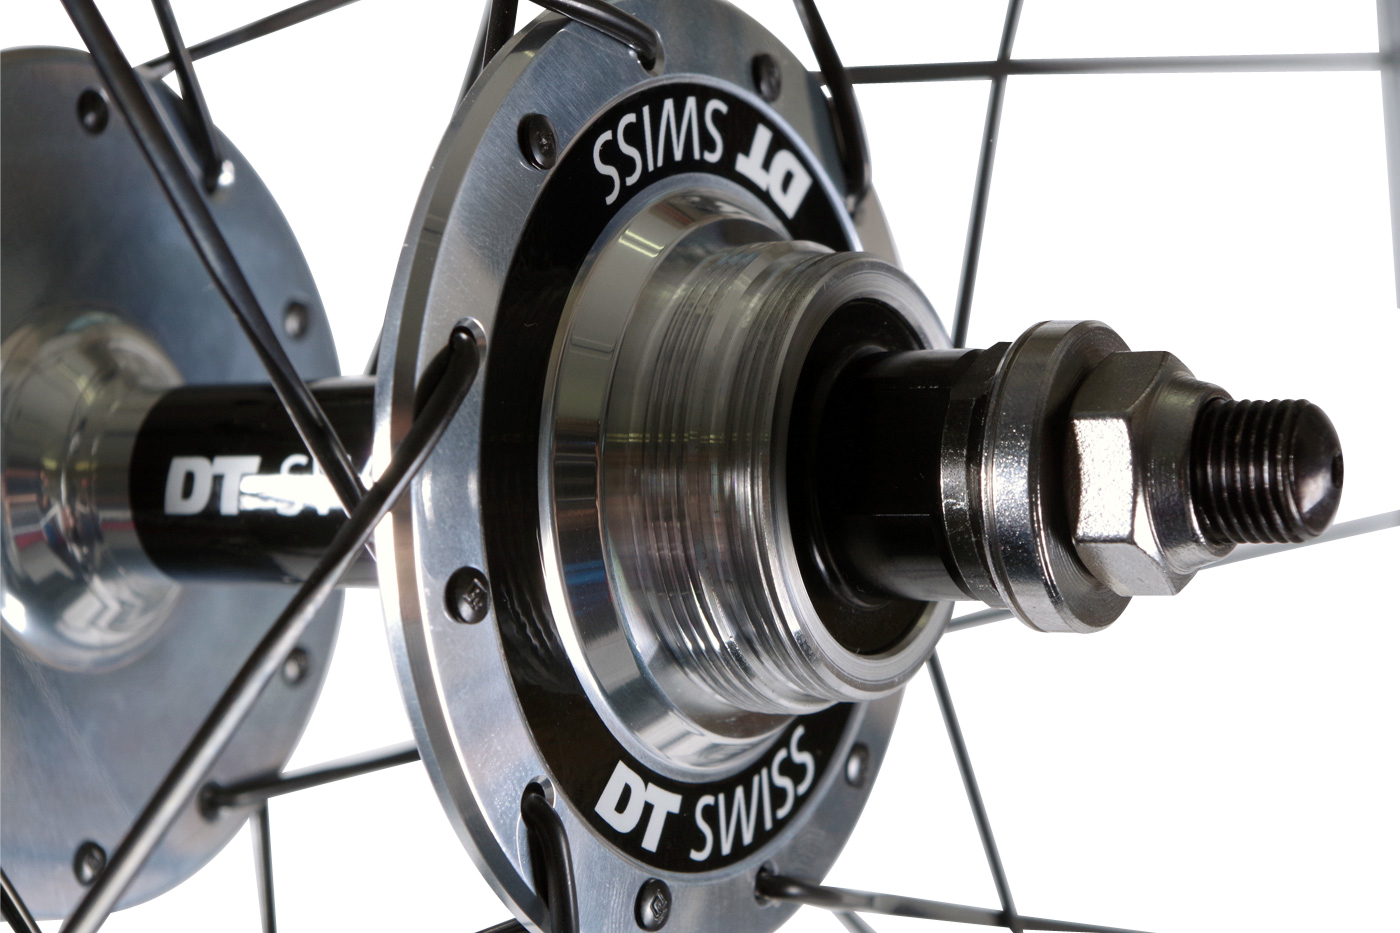 DT Swiss 05 - DT Swiss wheels - Now available at 8bar bikes